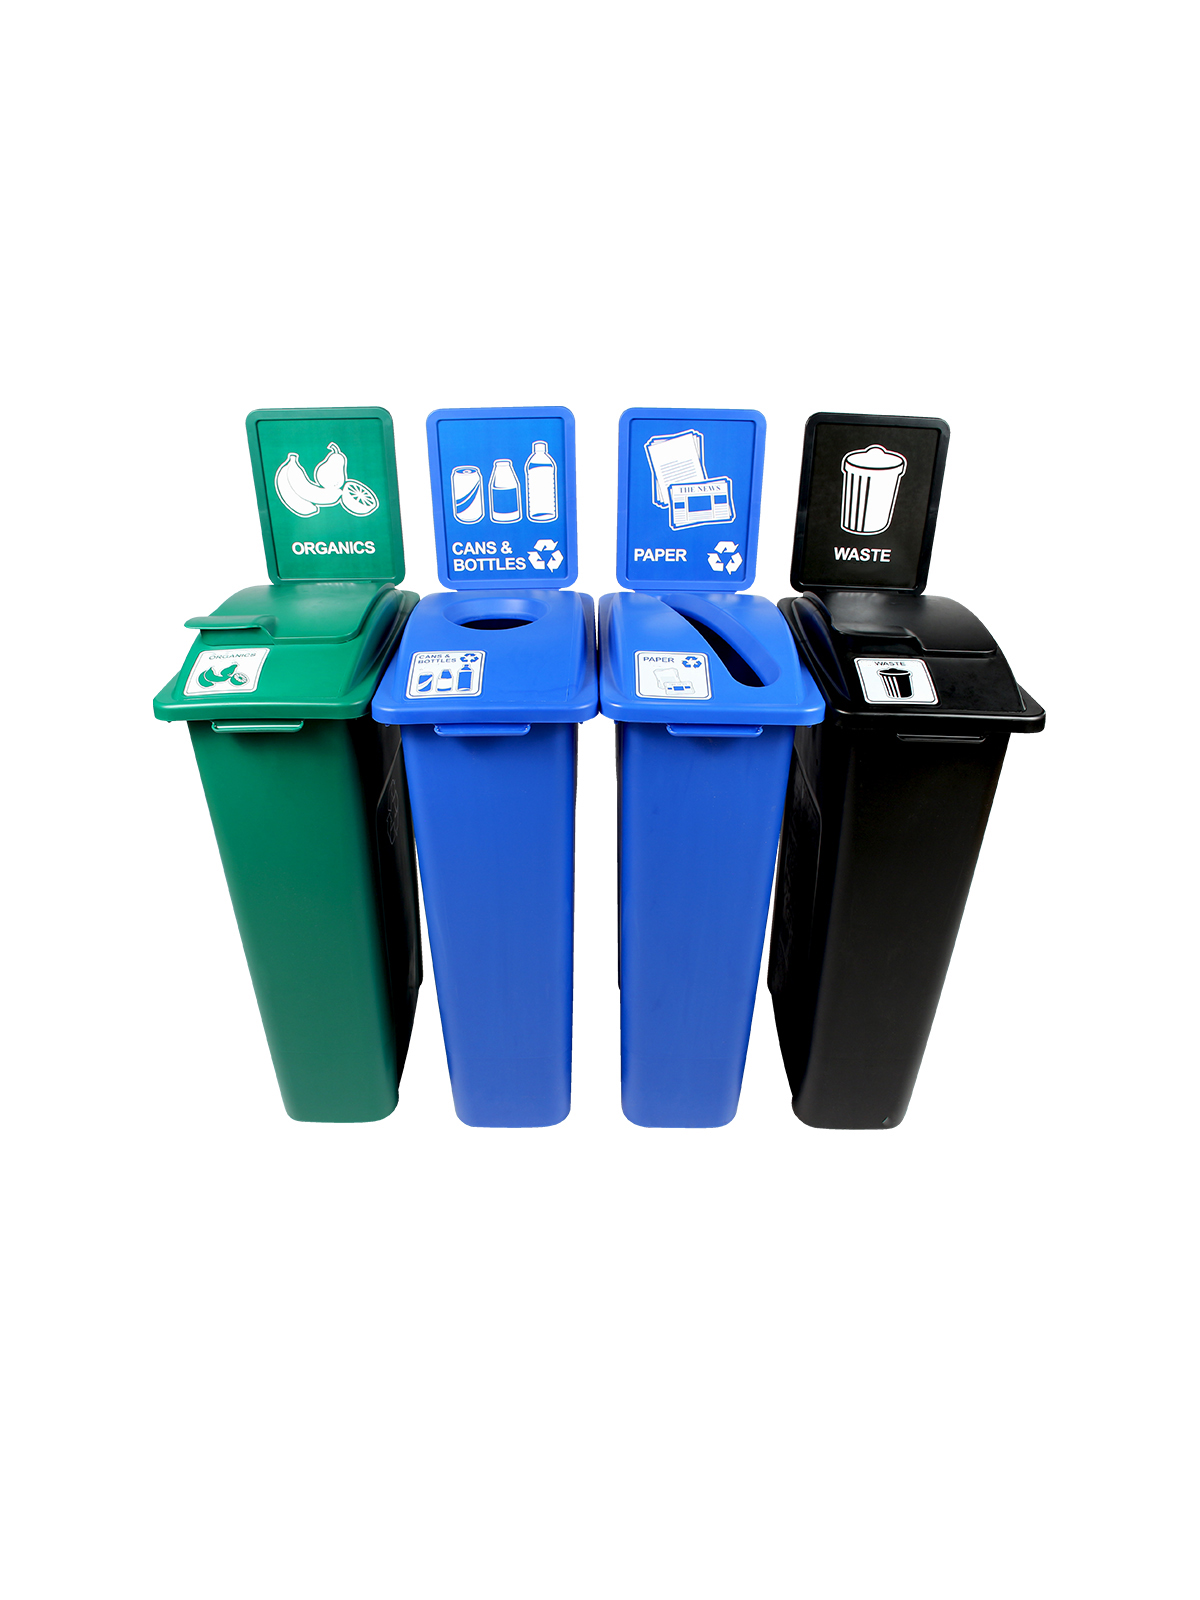 WASTE WATCHER - Quad - Cans & Bottles-Paper-Organics-Waste - Circle-Slot-Solid Lift-Solid Lift - Blue-Blue-Green-Black